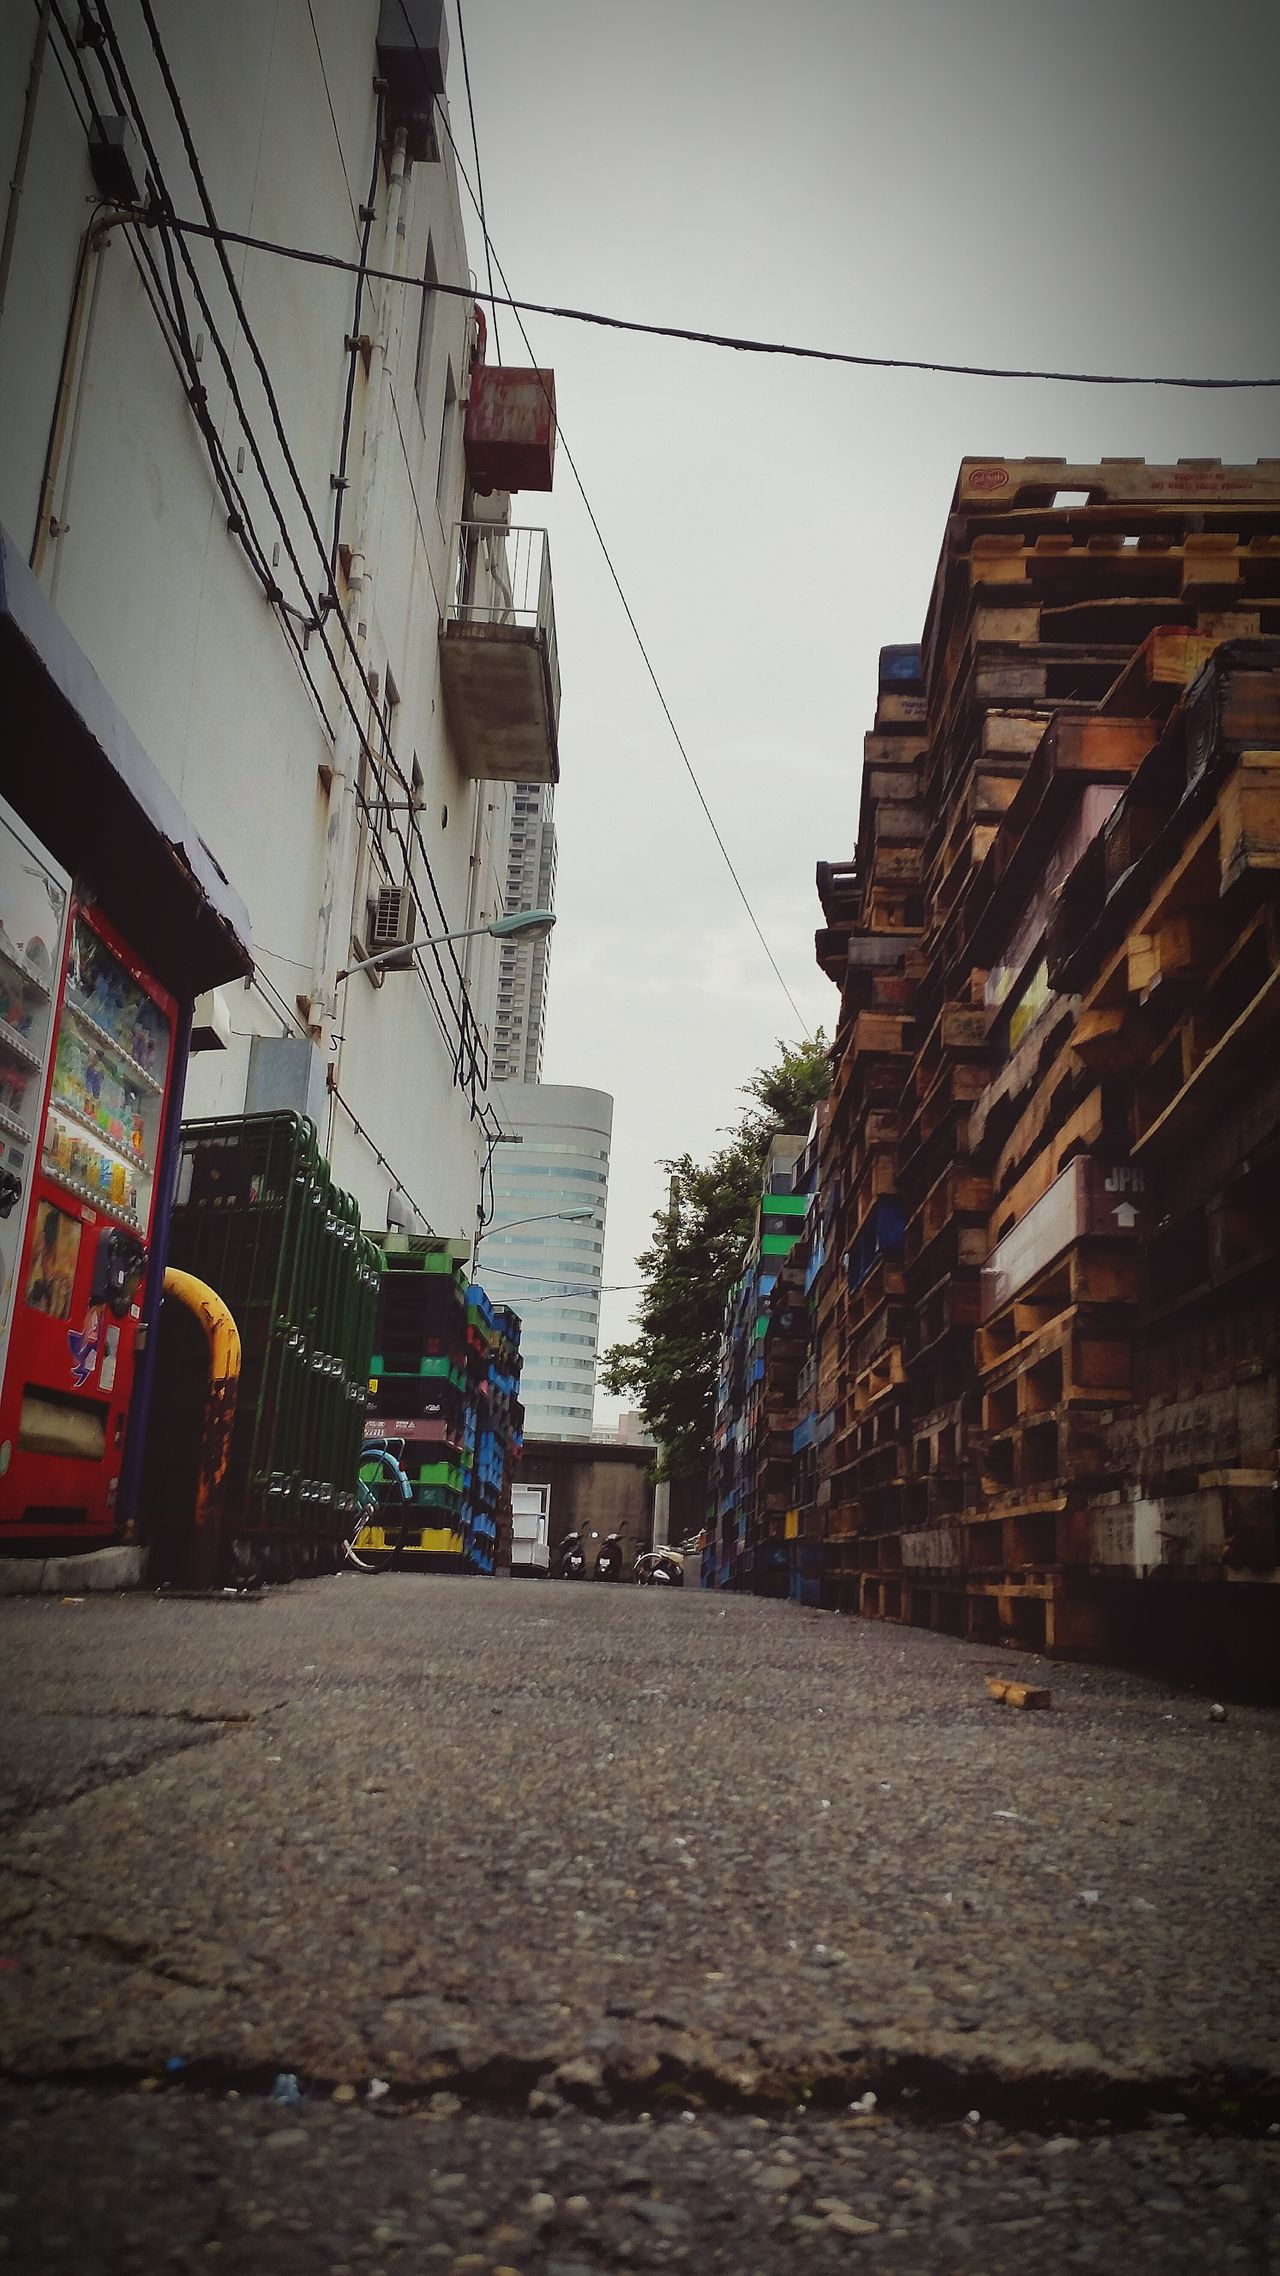 at the Unnoticed Back Alley of Tsukiji Fish Market Tokyo,Japan . City Street City Life City Sky Street Road Cloud - Sky Day Outdoors Abandoned Battle Of The Cities Cool Dark EyeEm Best Shots Palettes EyeEmBestPics Nostalgia Nostalgie Vending Machine Factory Forklift